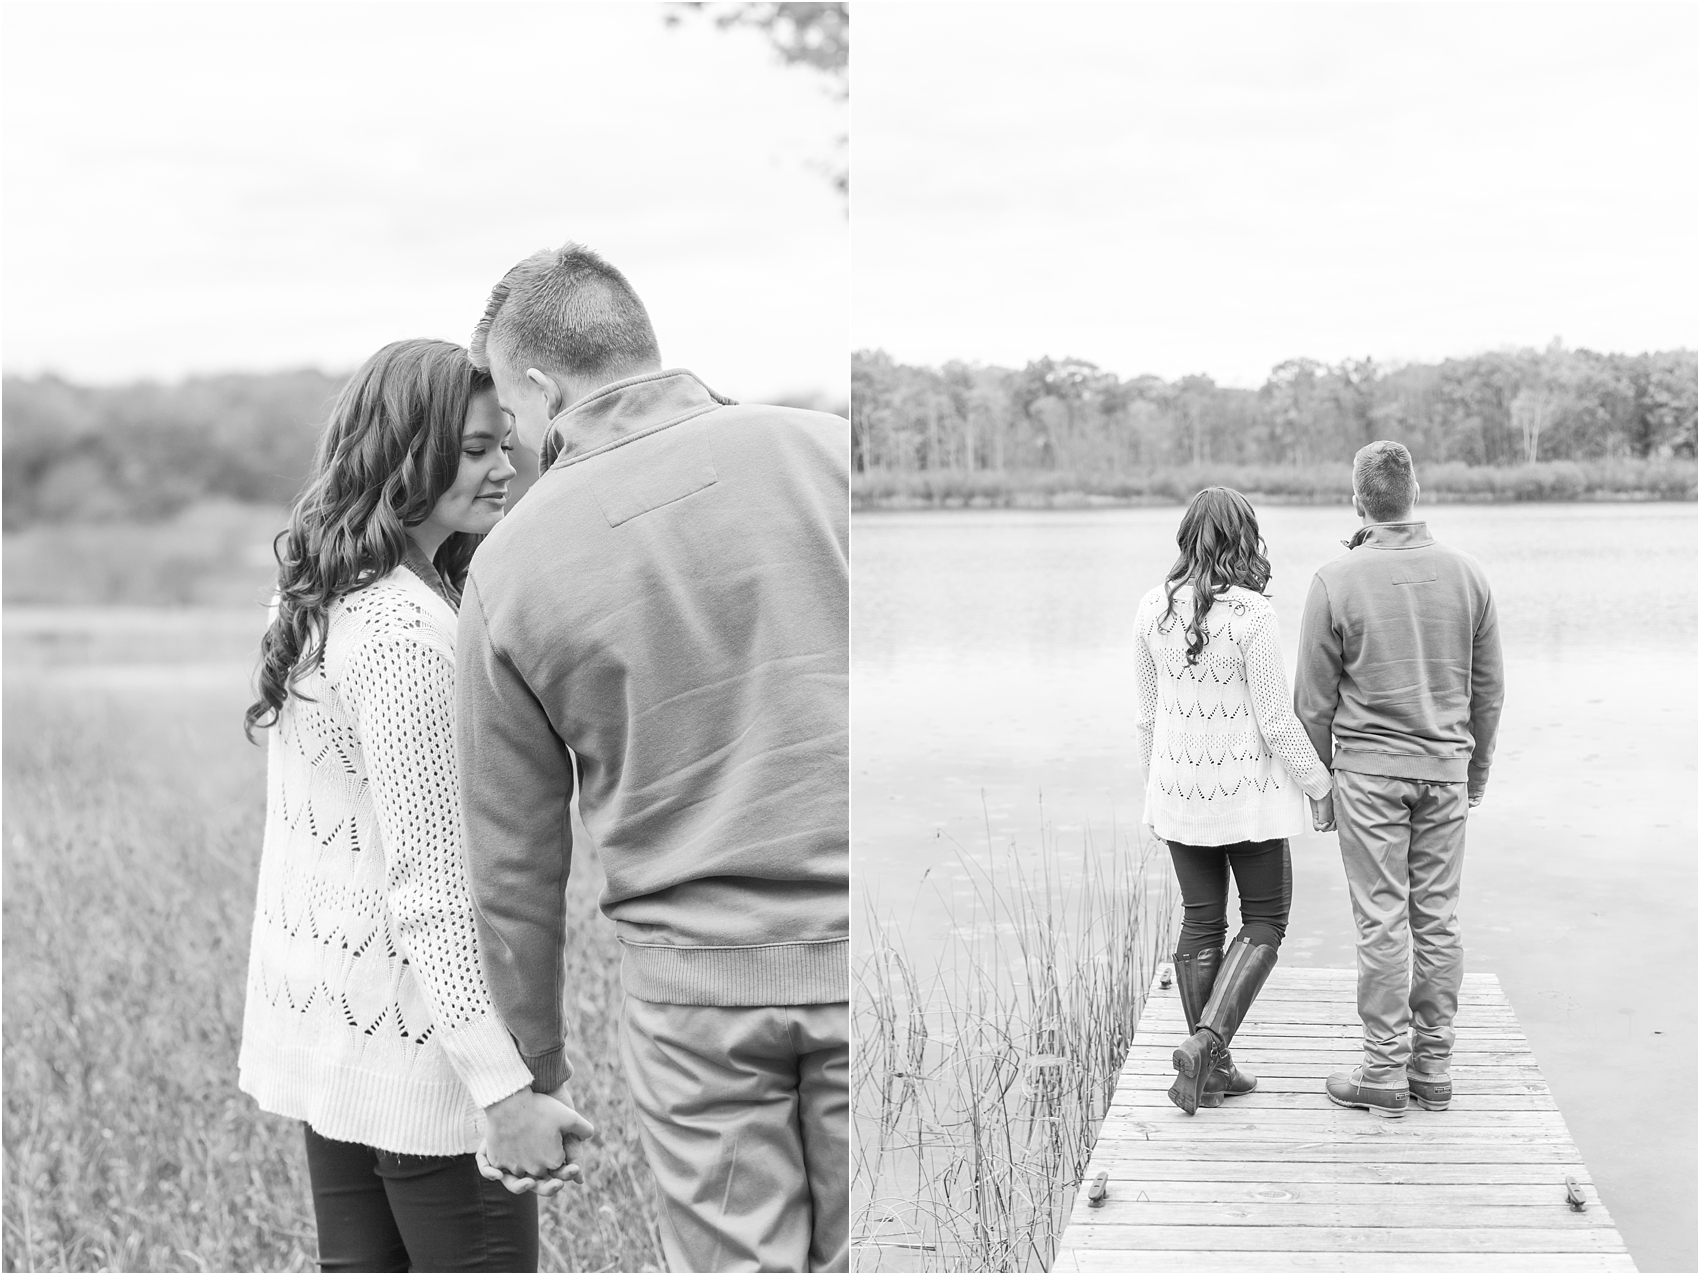 colorful-fall-engagement-photos-at-the-lake-at-huron-meadows-metropark-in-brighton-michigan-by-courtney-carolyn-photography_0025.jpg